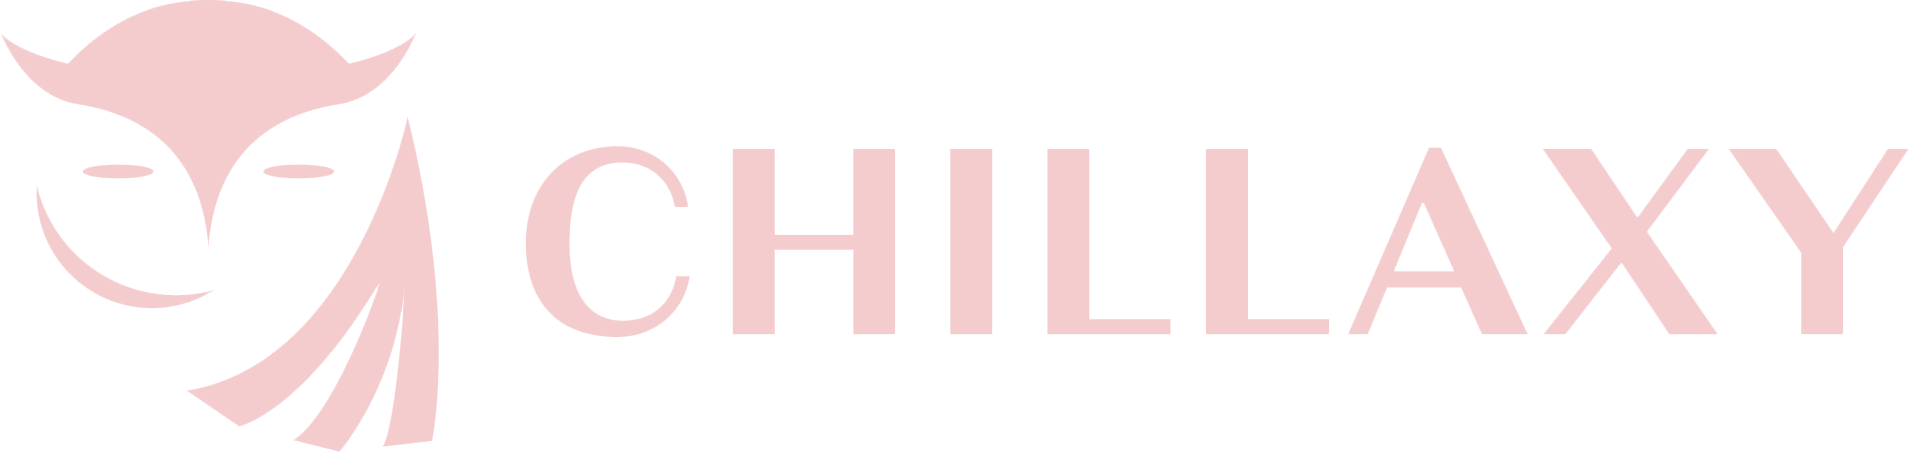 チラクシー - CHILLAXY - logo - 1909x452